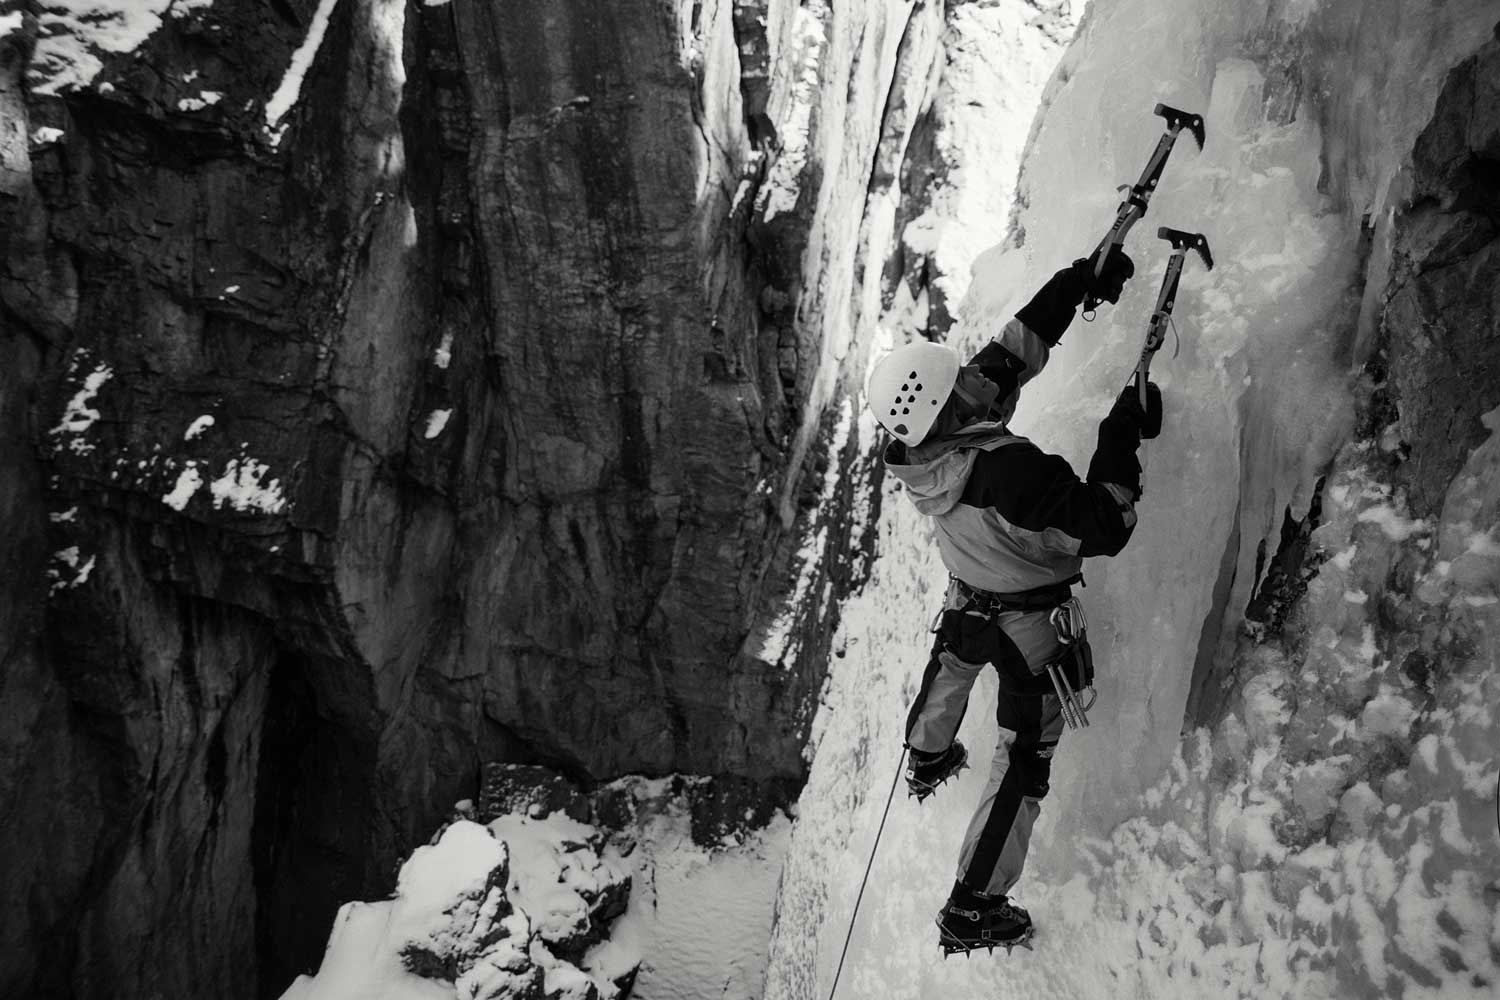 An ice climber scales a very vertical ice wall with picks and rope.